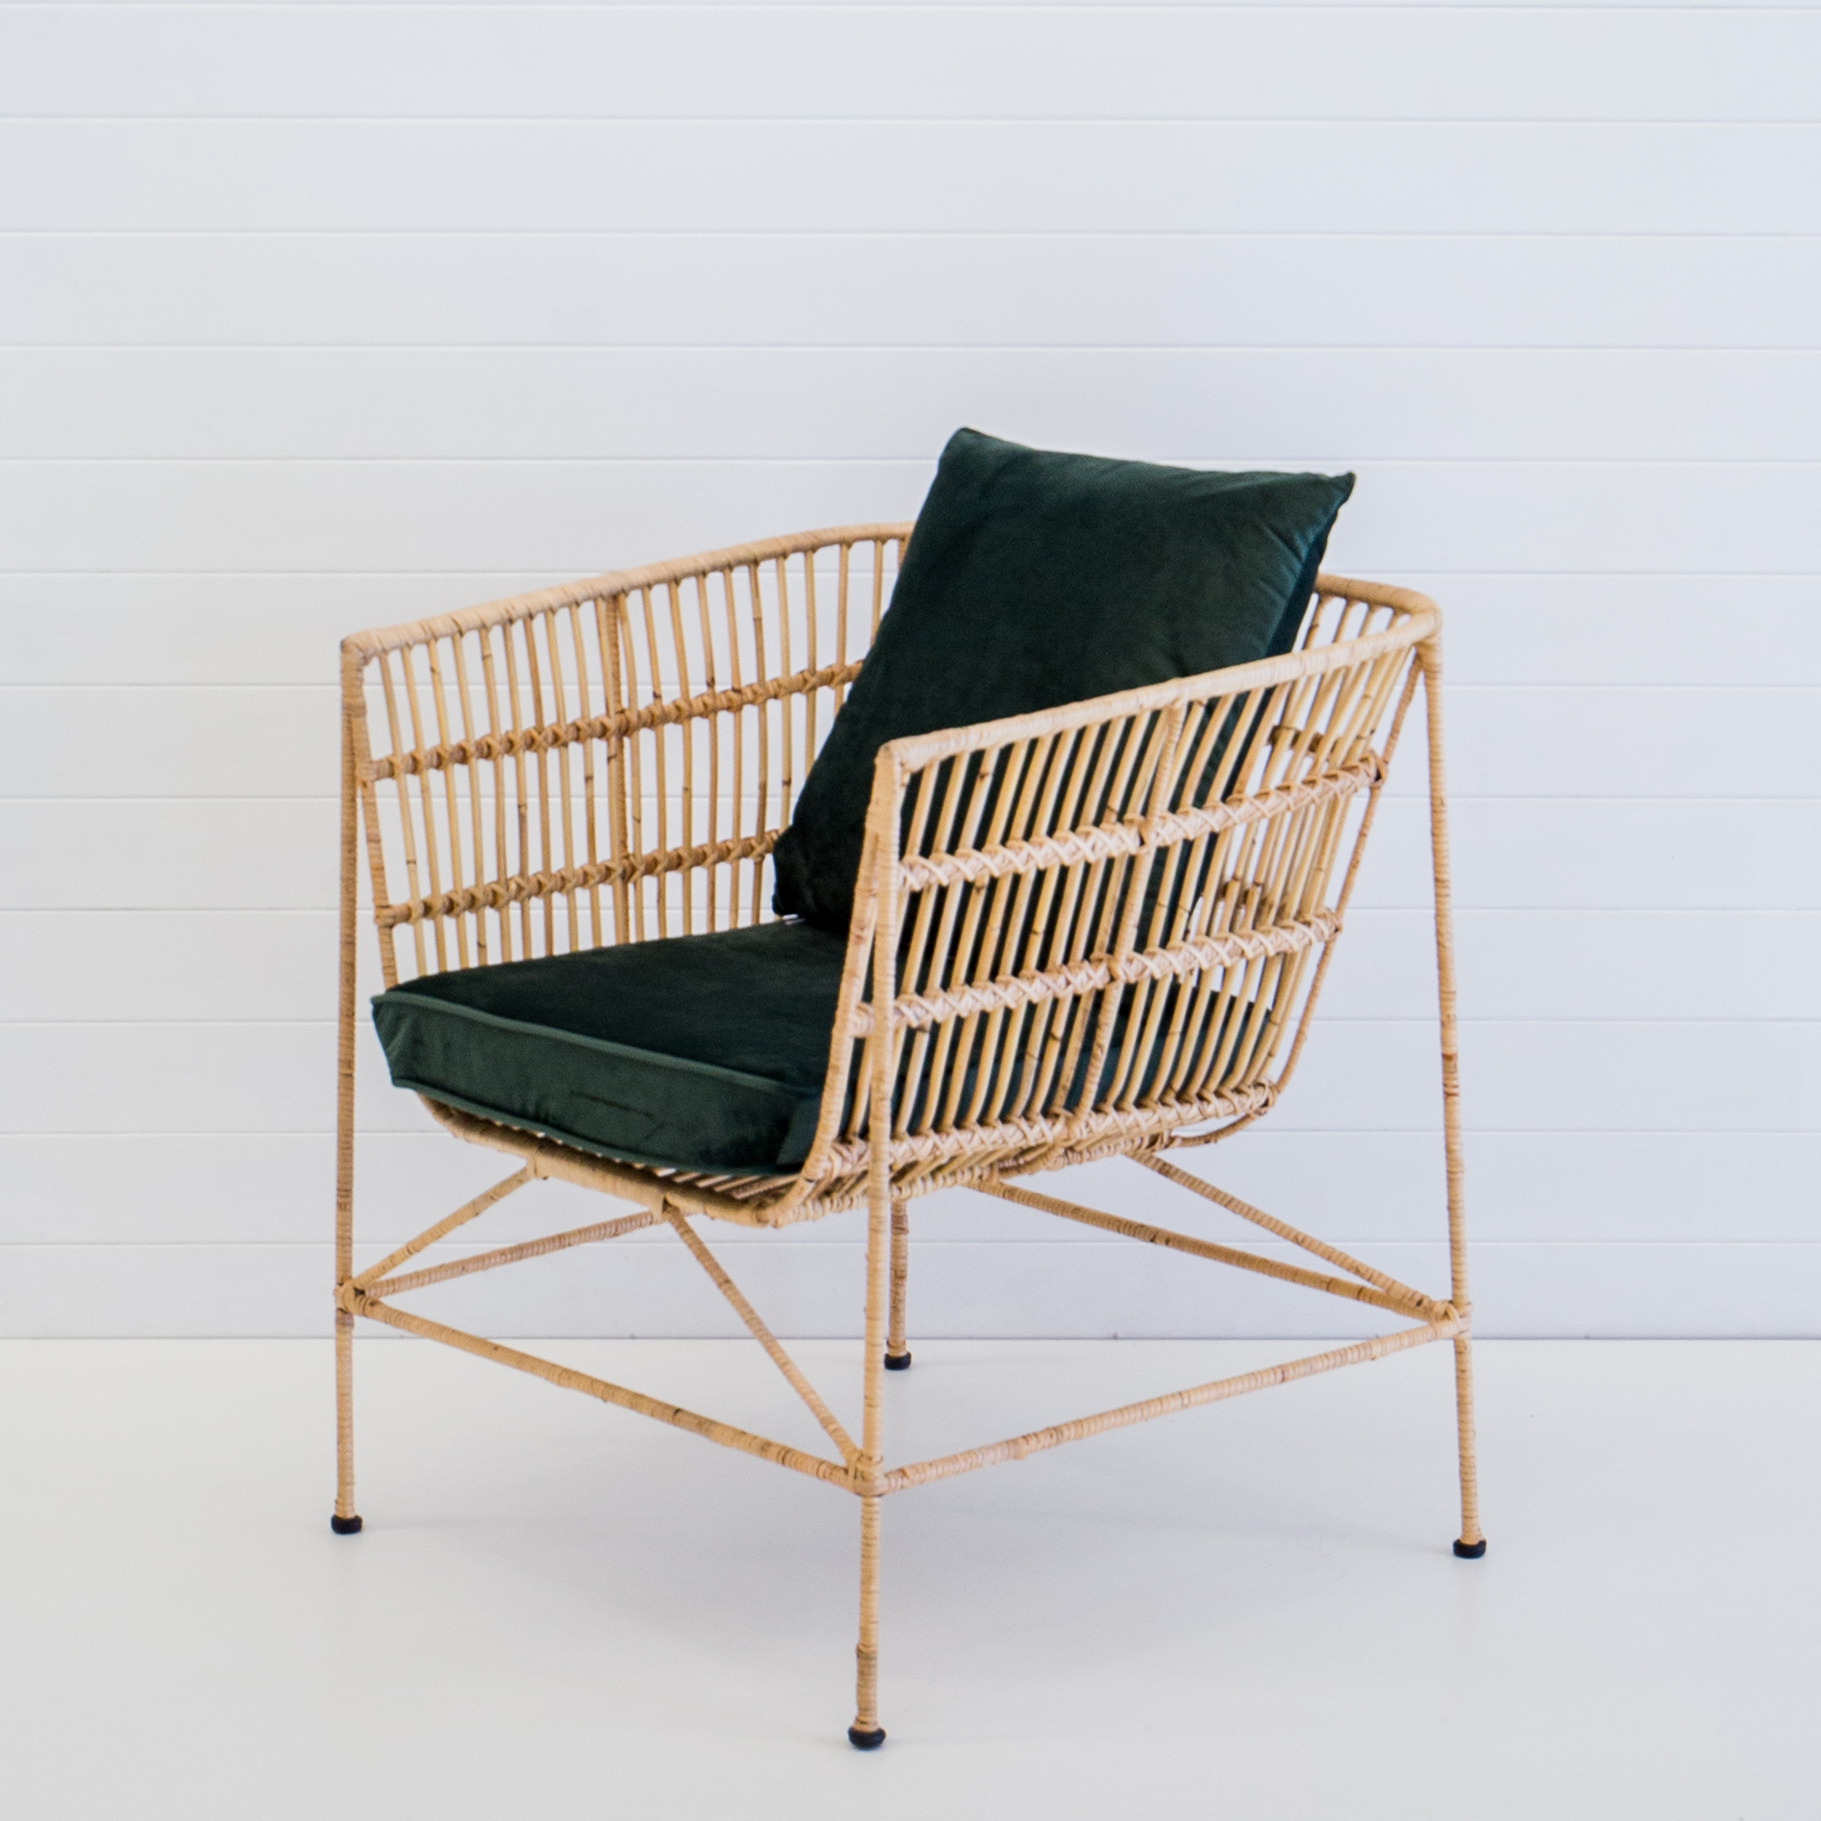 INDIE NATURAL ARMCHAIR WITH EMERALD VELVET CUSHIONS